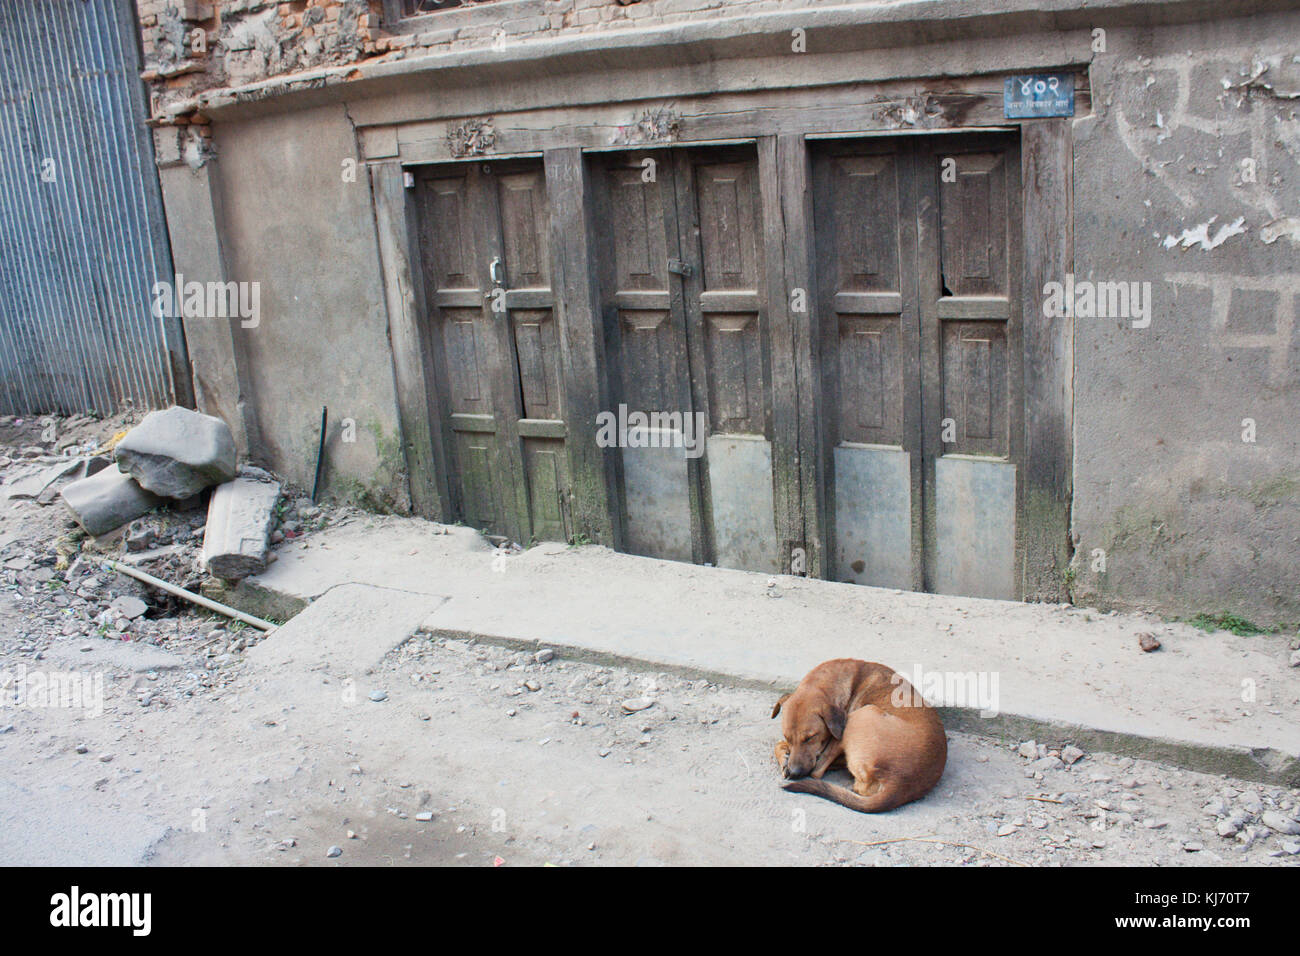 A stray dog in Thamel, Kathmandu. After the earthquake in Nepal. - Stock Image